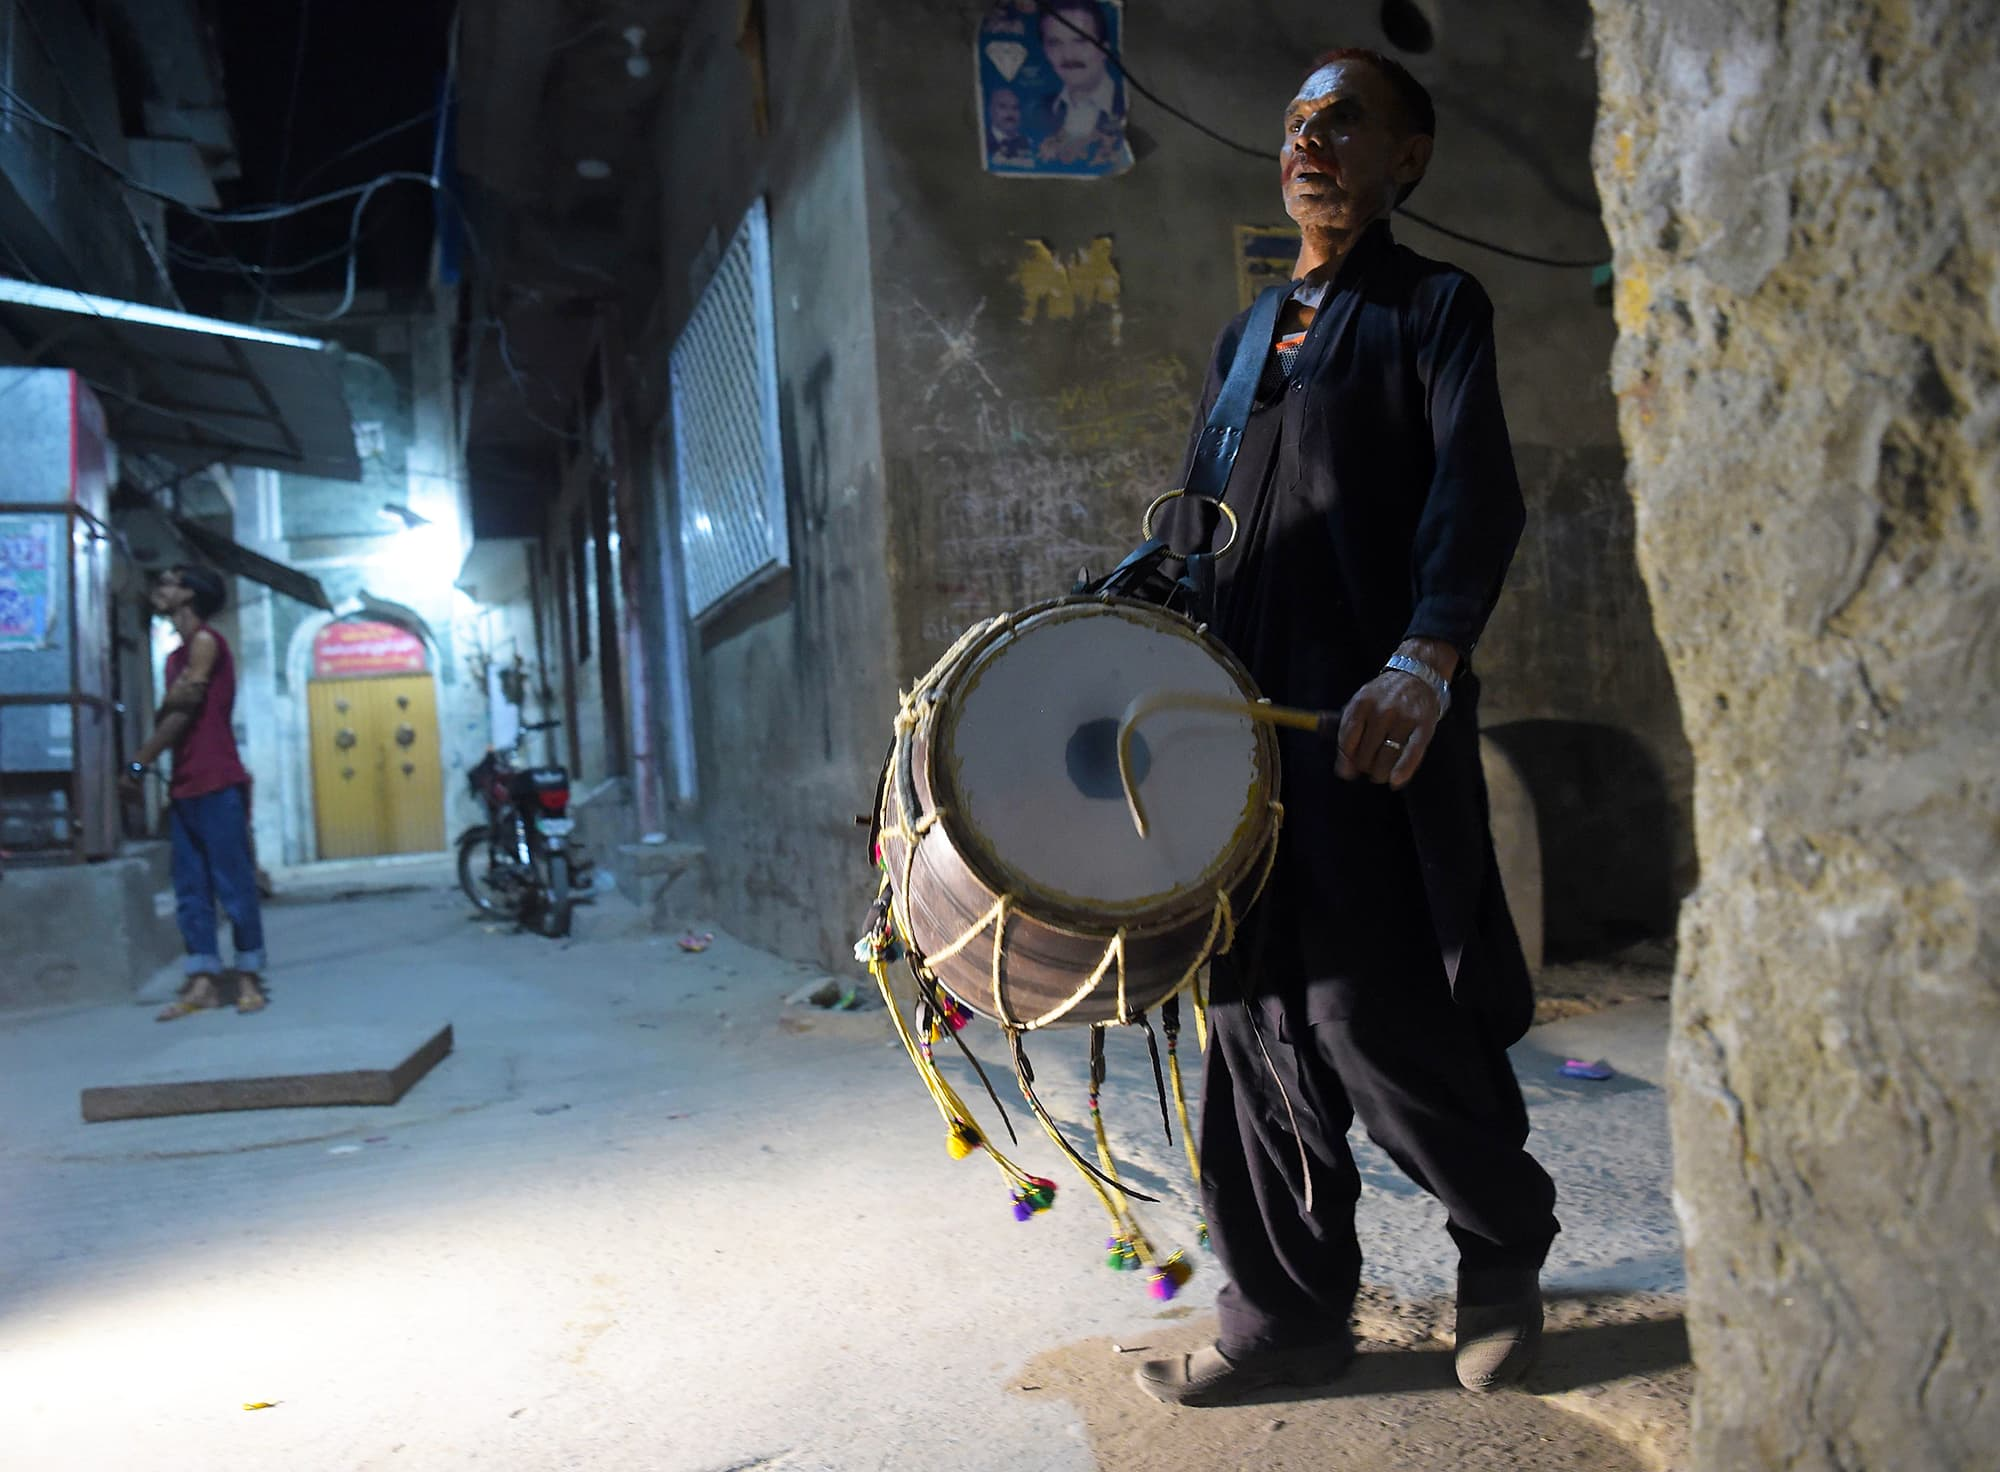 Lal Hussain, 66, beats his drum as he makes calls at doors to wake people up for Sehri by his drumbeats. — AFP